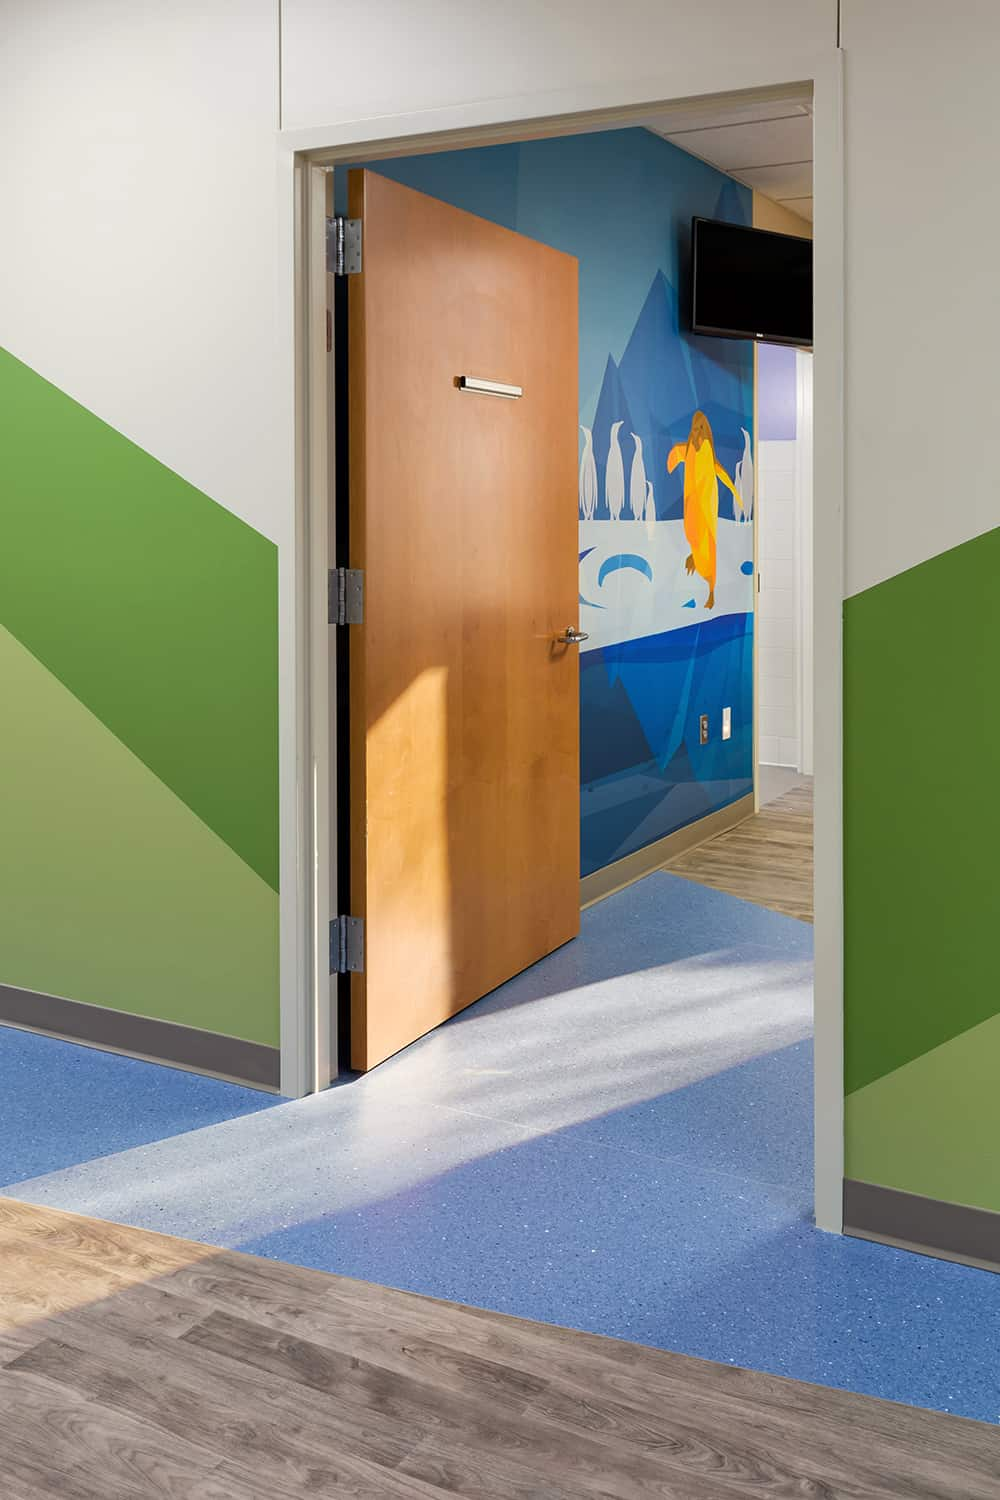 The door to a patient room with a view to a penguin wall mural.